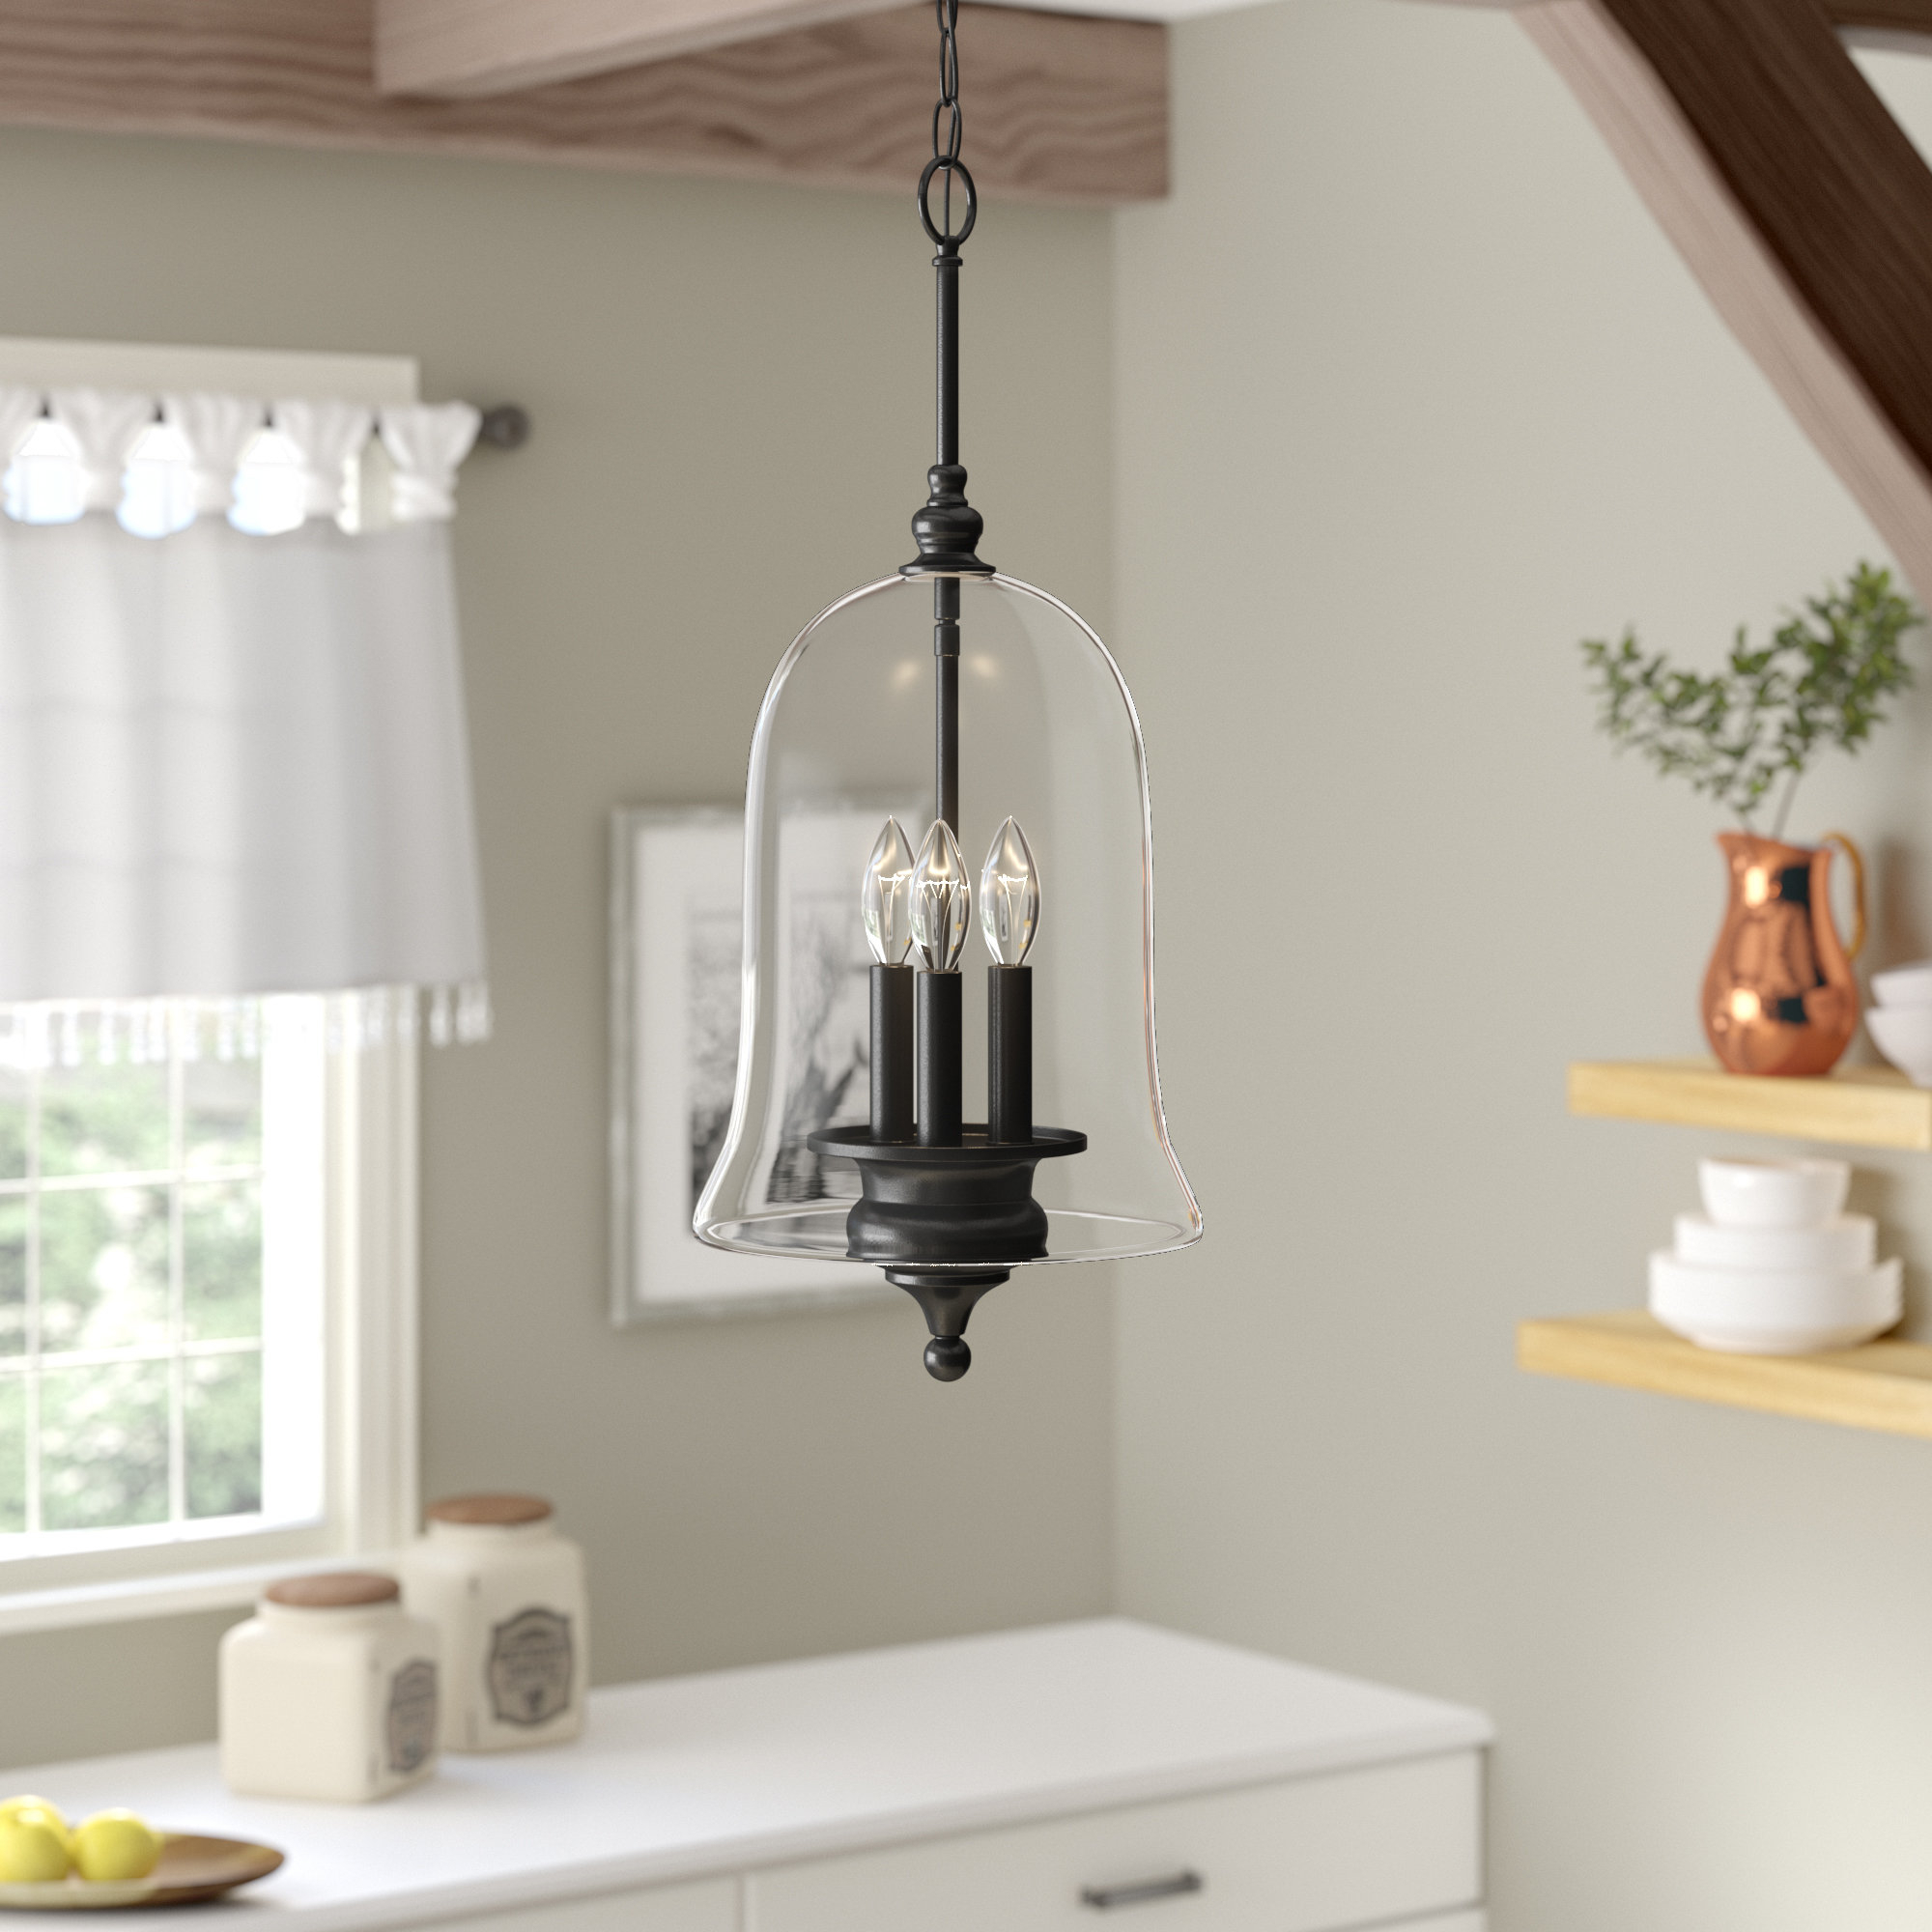 Youngberg 3 Light Single Bell Pendant Throughout Fashionable Dirksen 3 Light Single Cylinder Chandeliers (View 5 of 20)